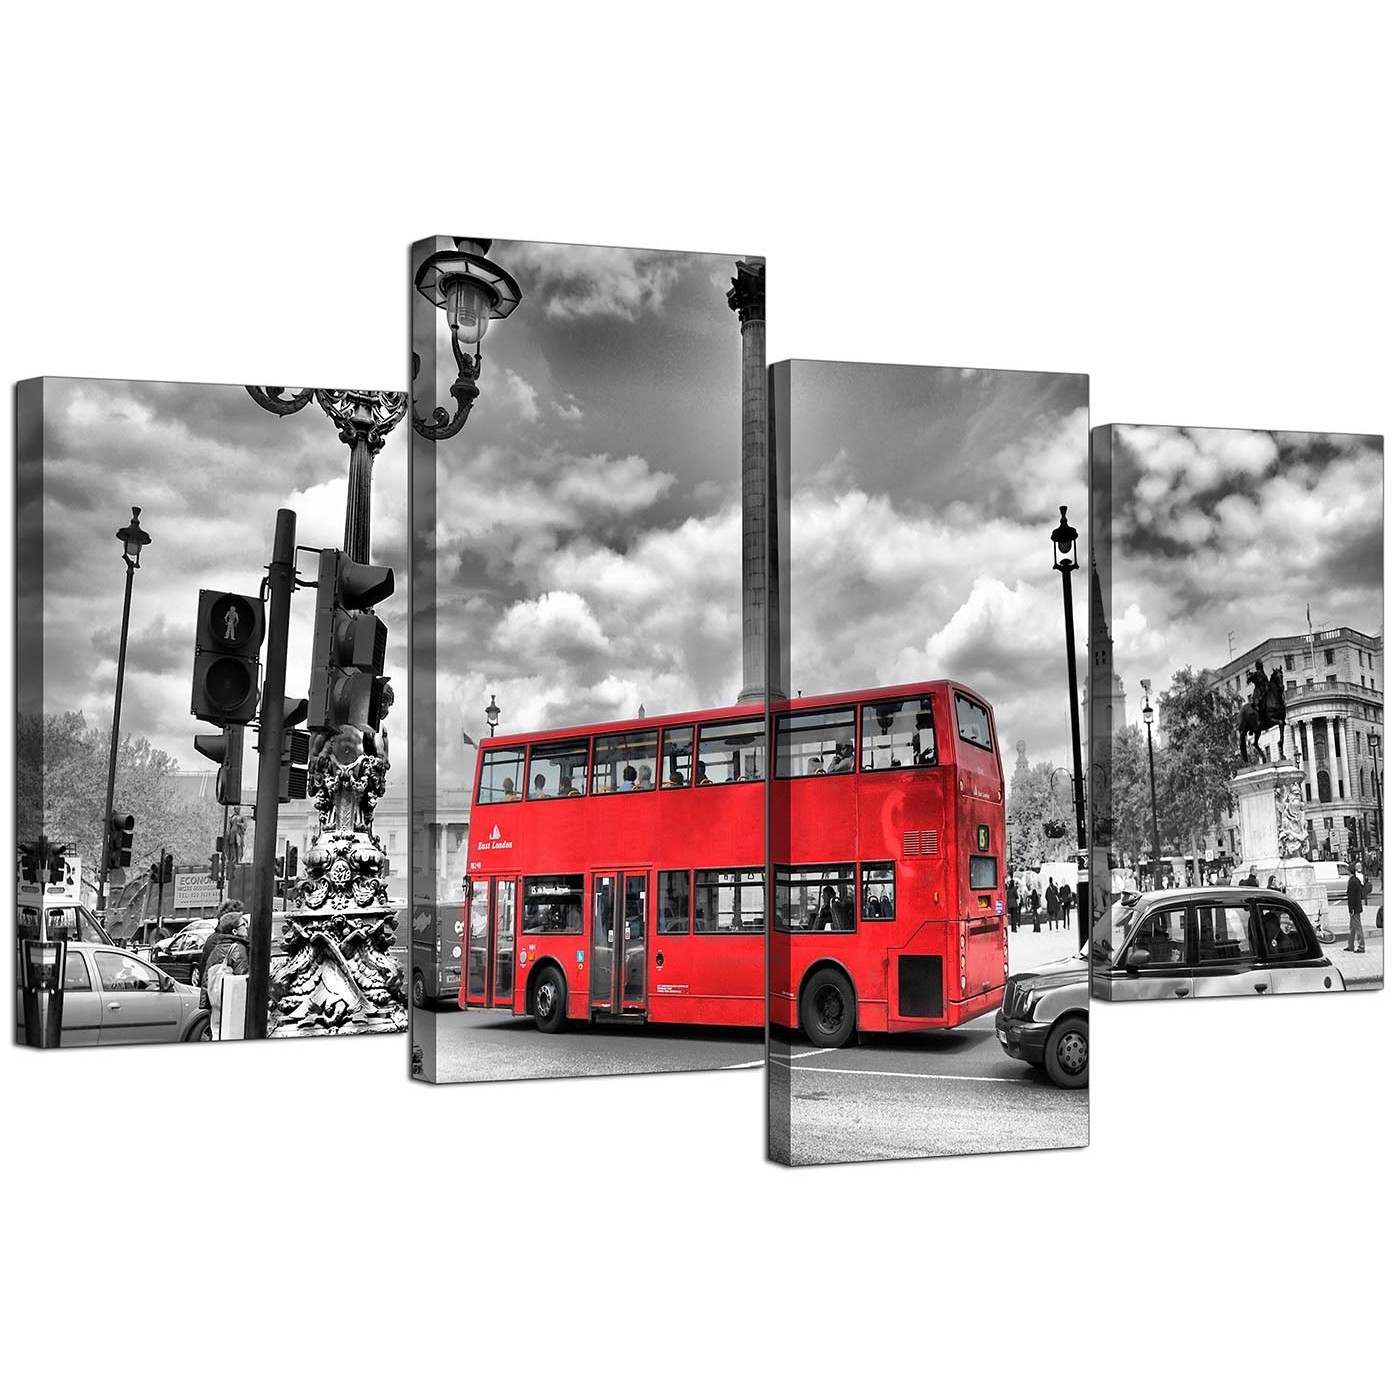 City London Canvas Prints Of Red Bus In Black & White For Living Room Pertaining To Newest London Canvas Wall Art (View 7 of 15)